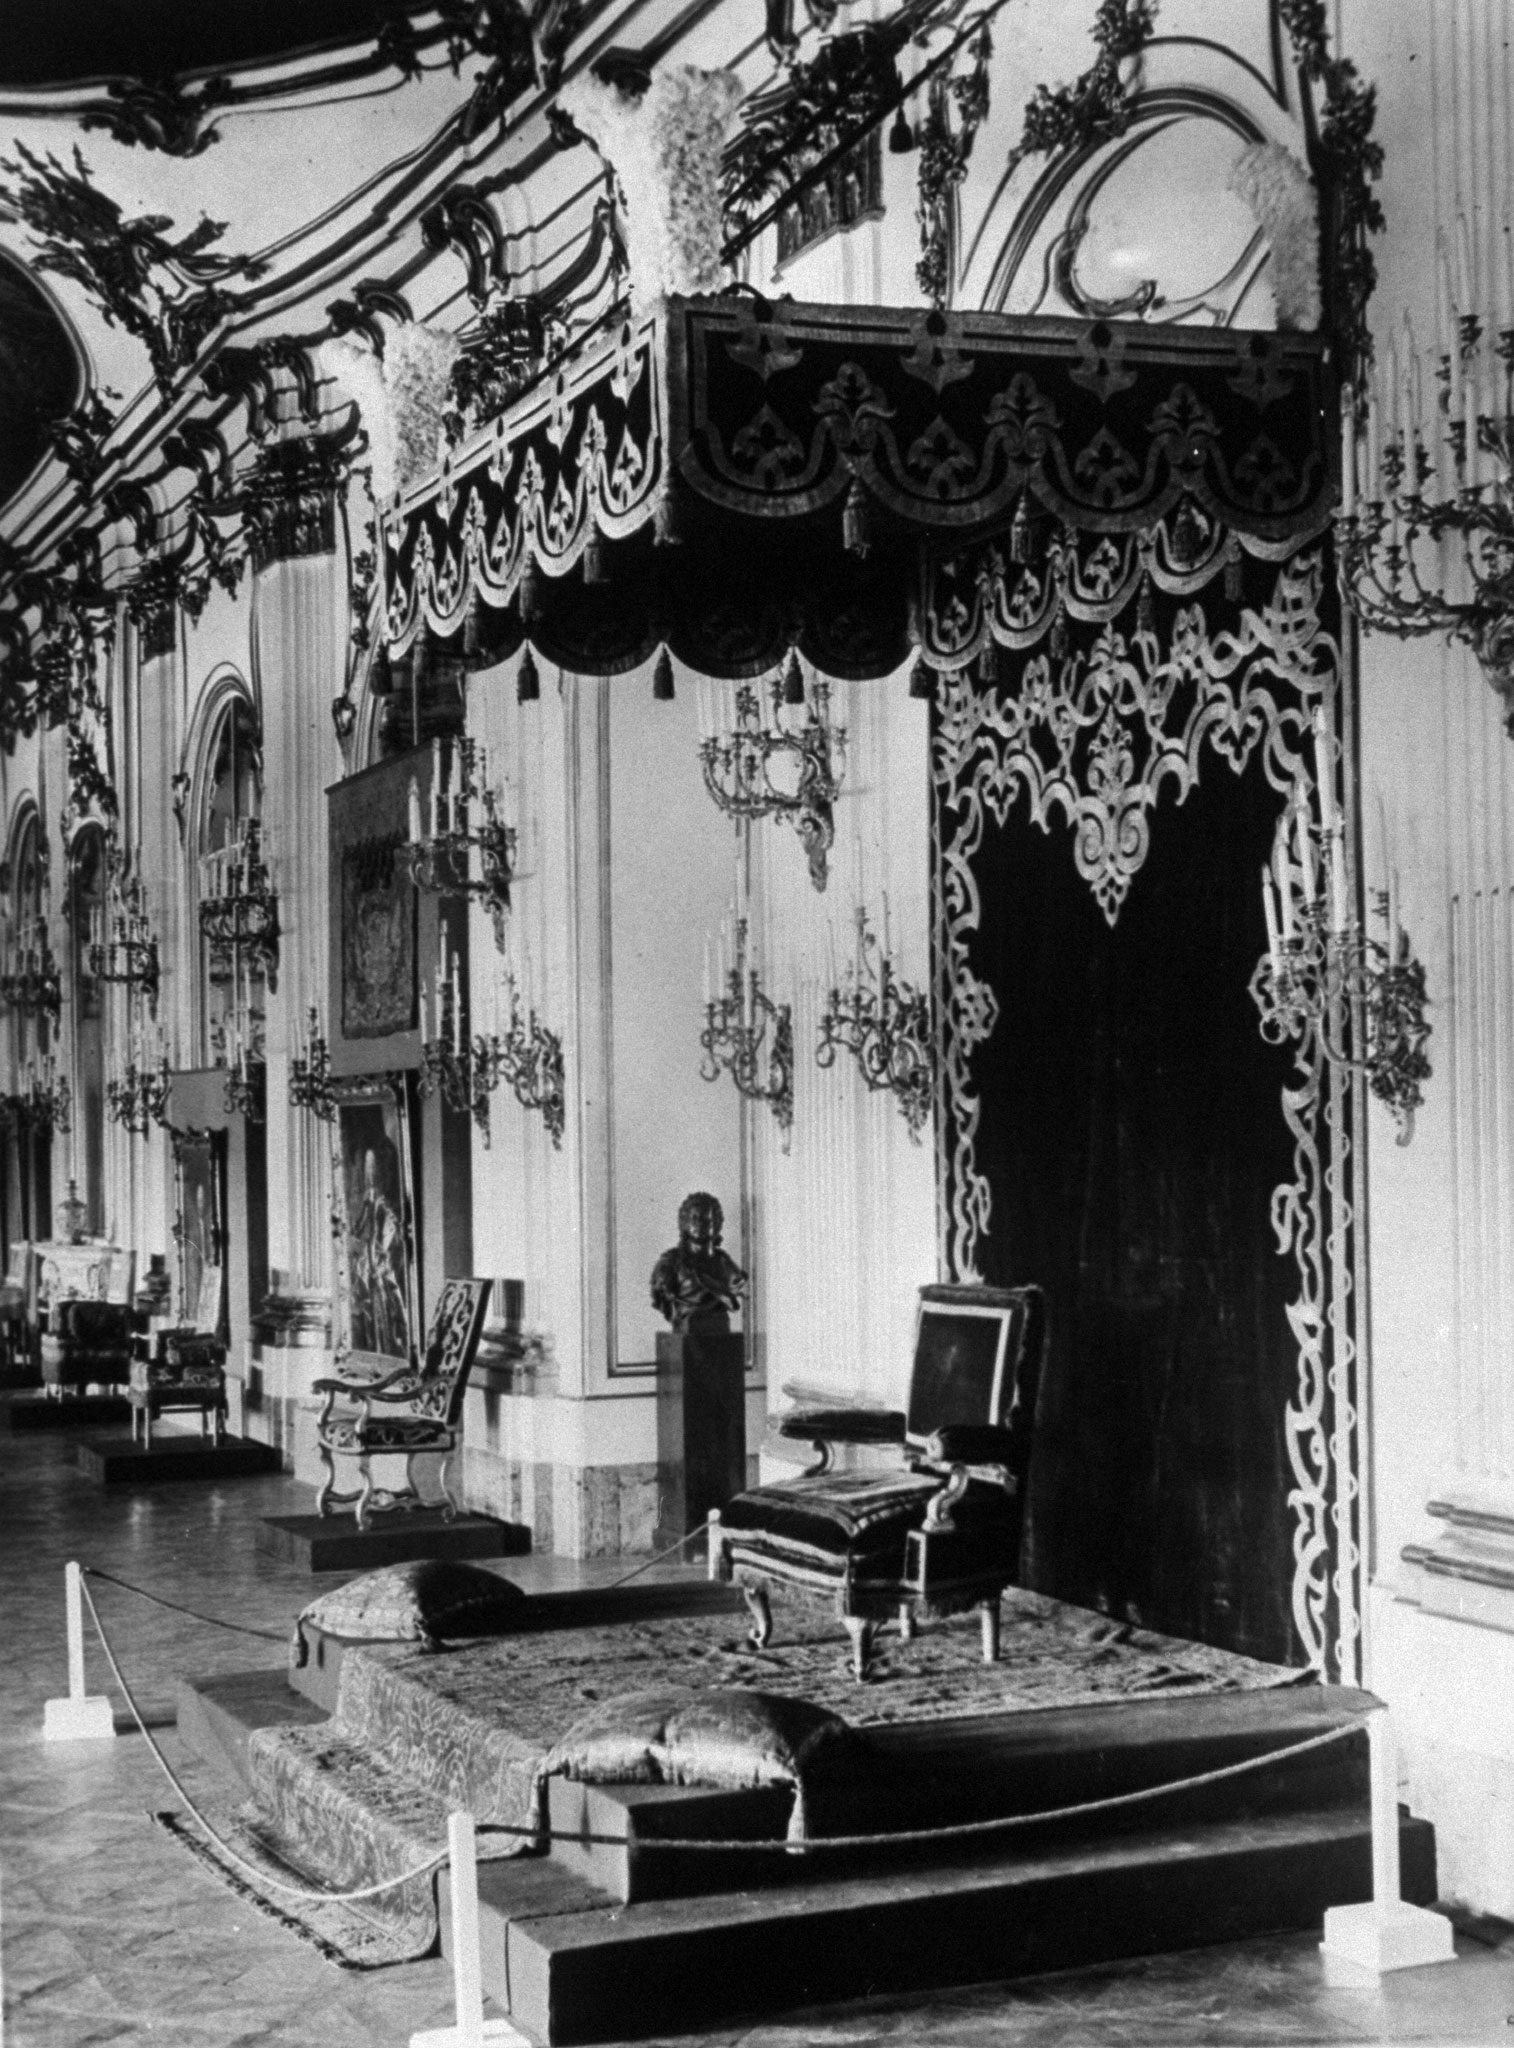 Throne room of the Empress Maria Theresa of Austria in the Castle Schoenbrunn, 1930.